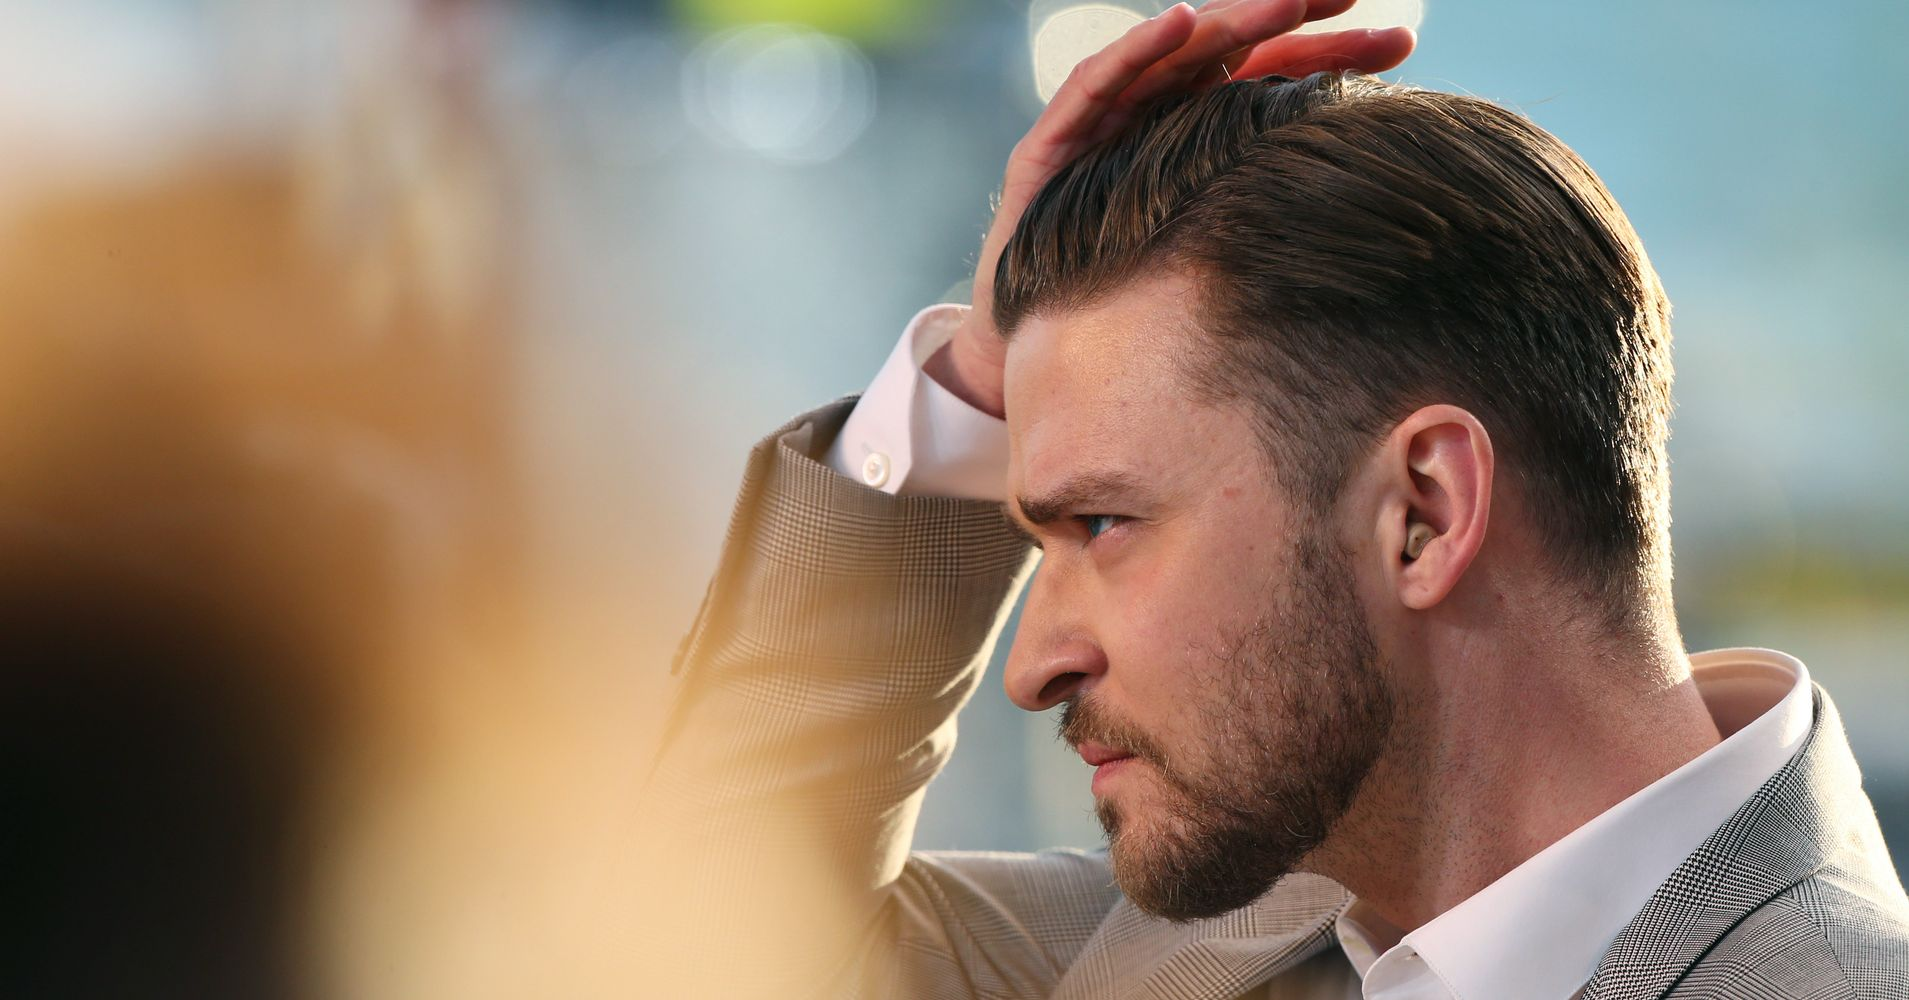 Show These Short Men S Hairstyles To Your Barber Huffpost Life